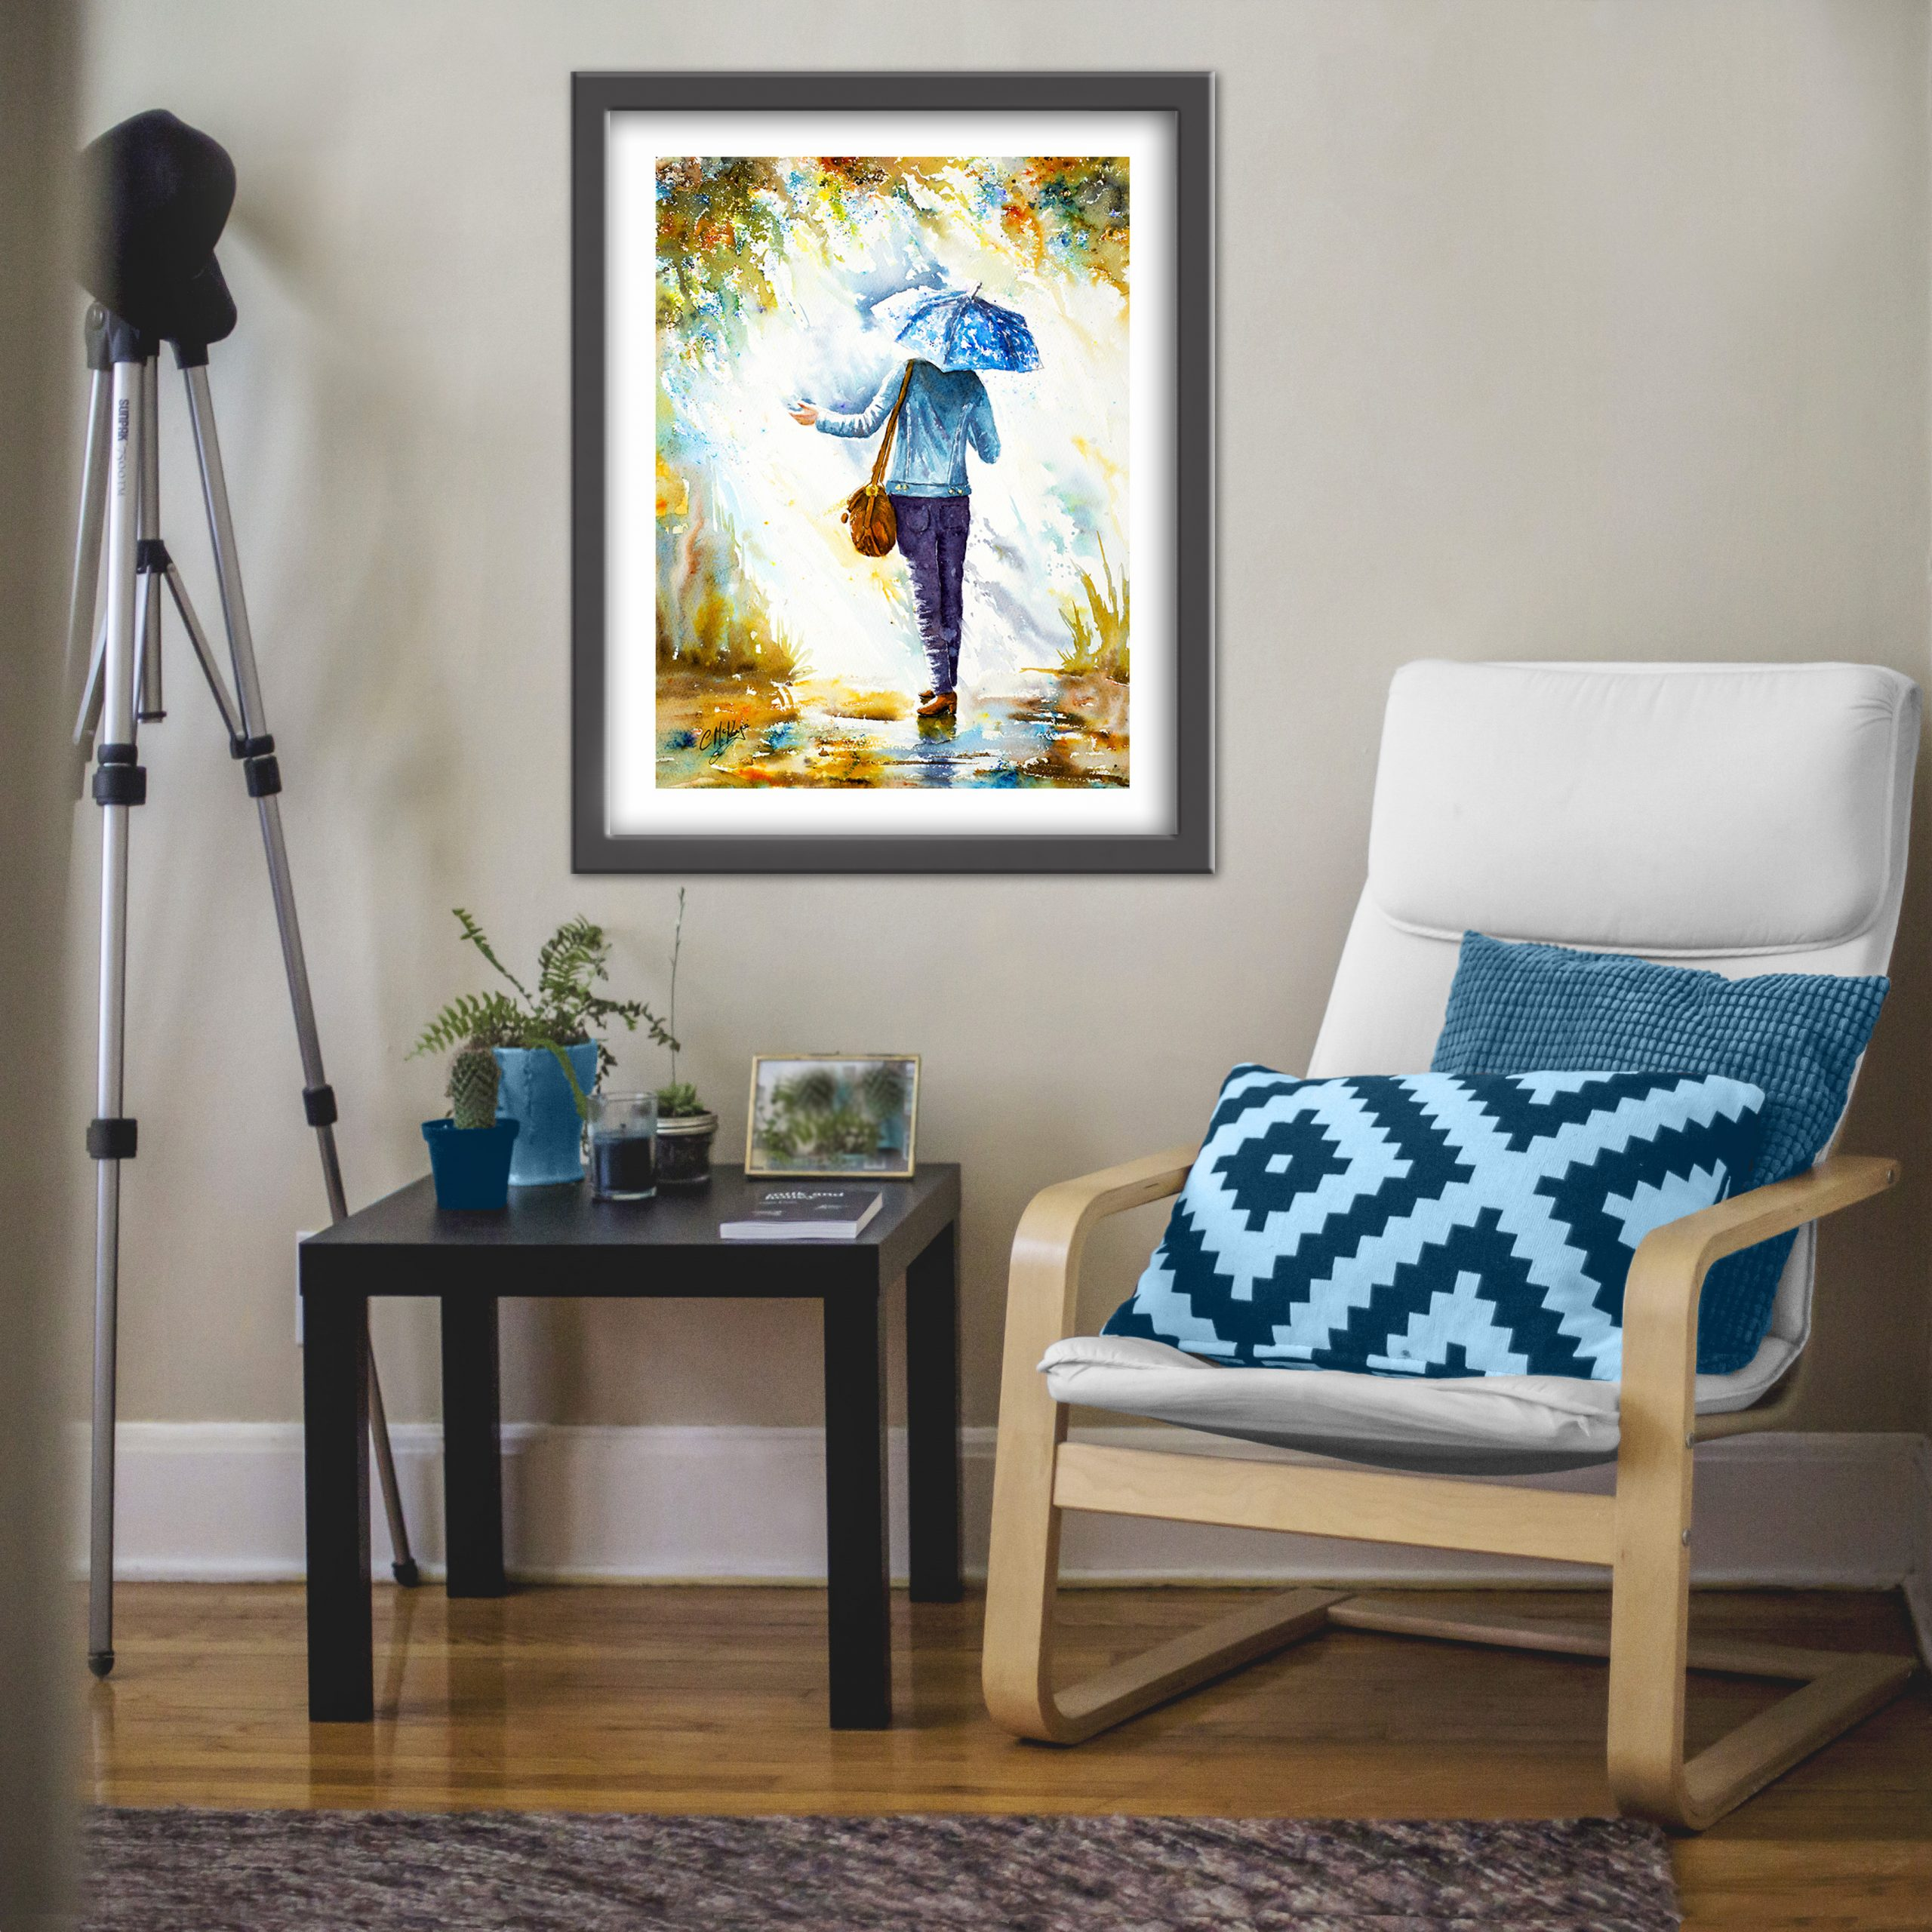 rain, umbrella, rain painting, rain art, art, painting, mixed media, girl, lady, weather, walking